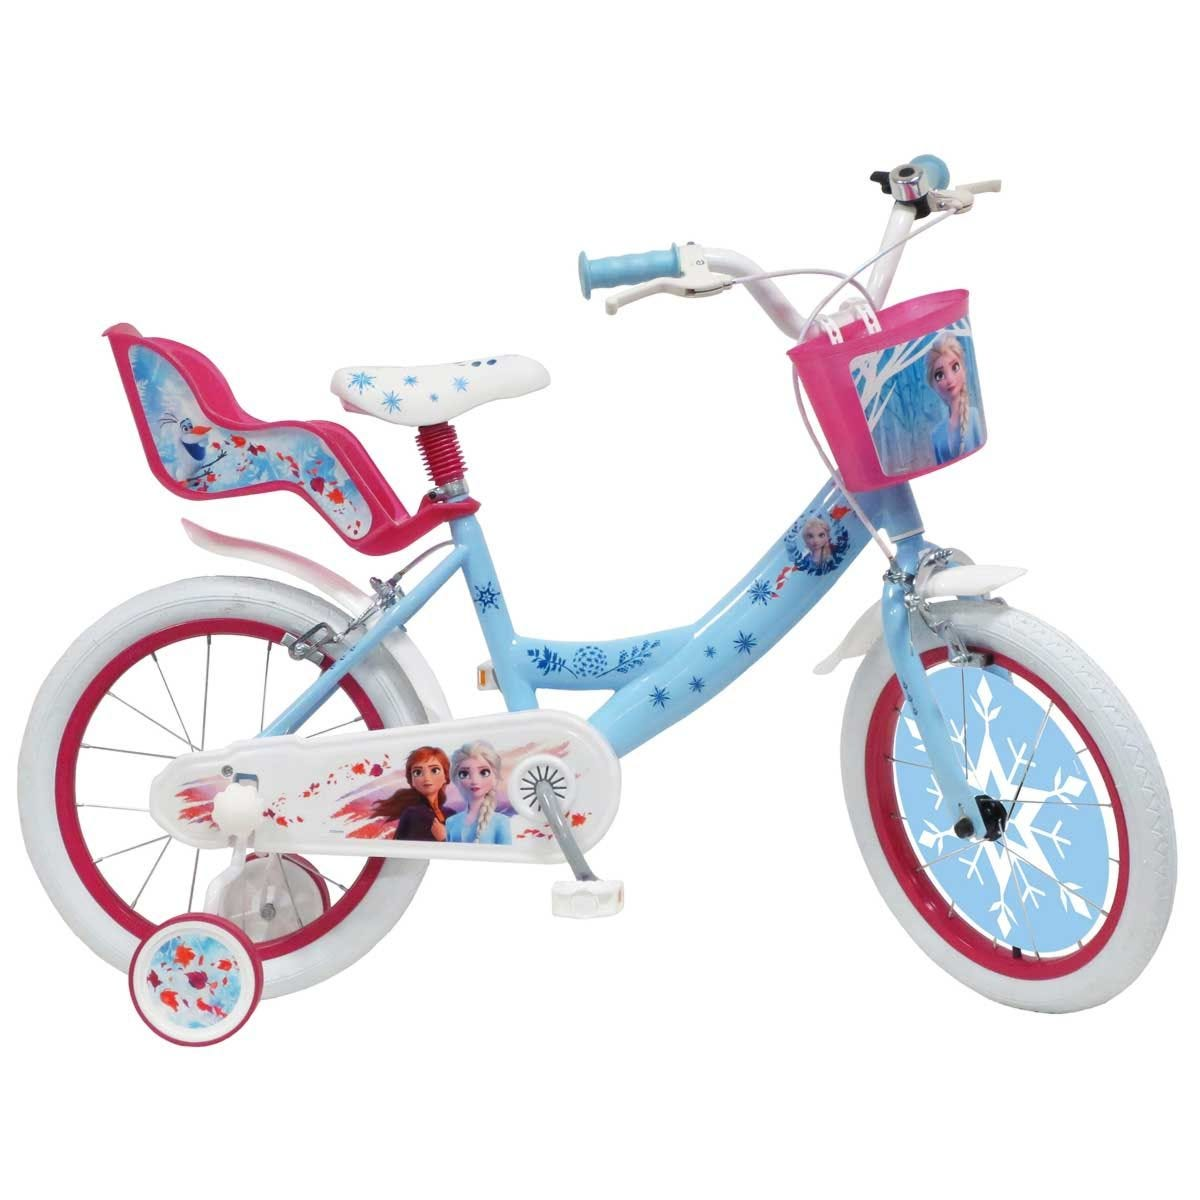 Frozen 2 Licensed 16'' Kids Bike